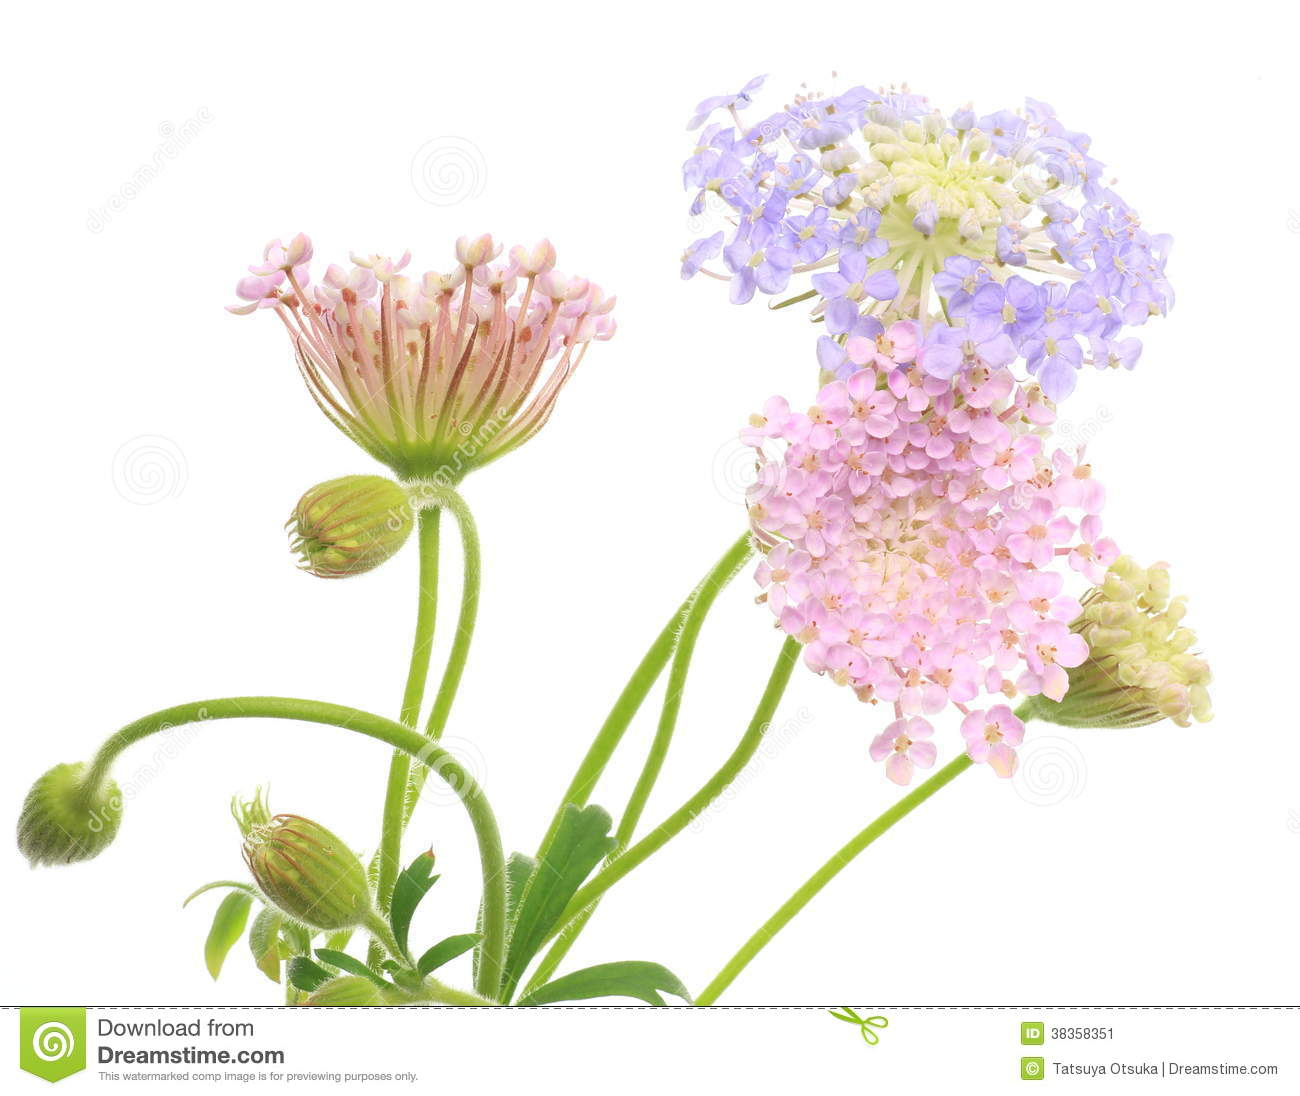 Pincushion Flowers Stock Photos Royalty Free Pictures